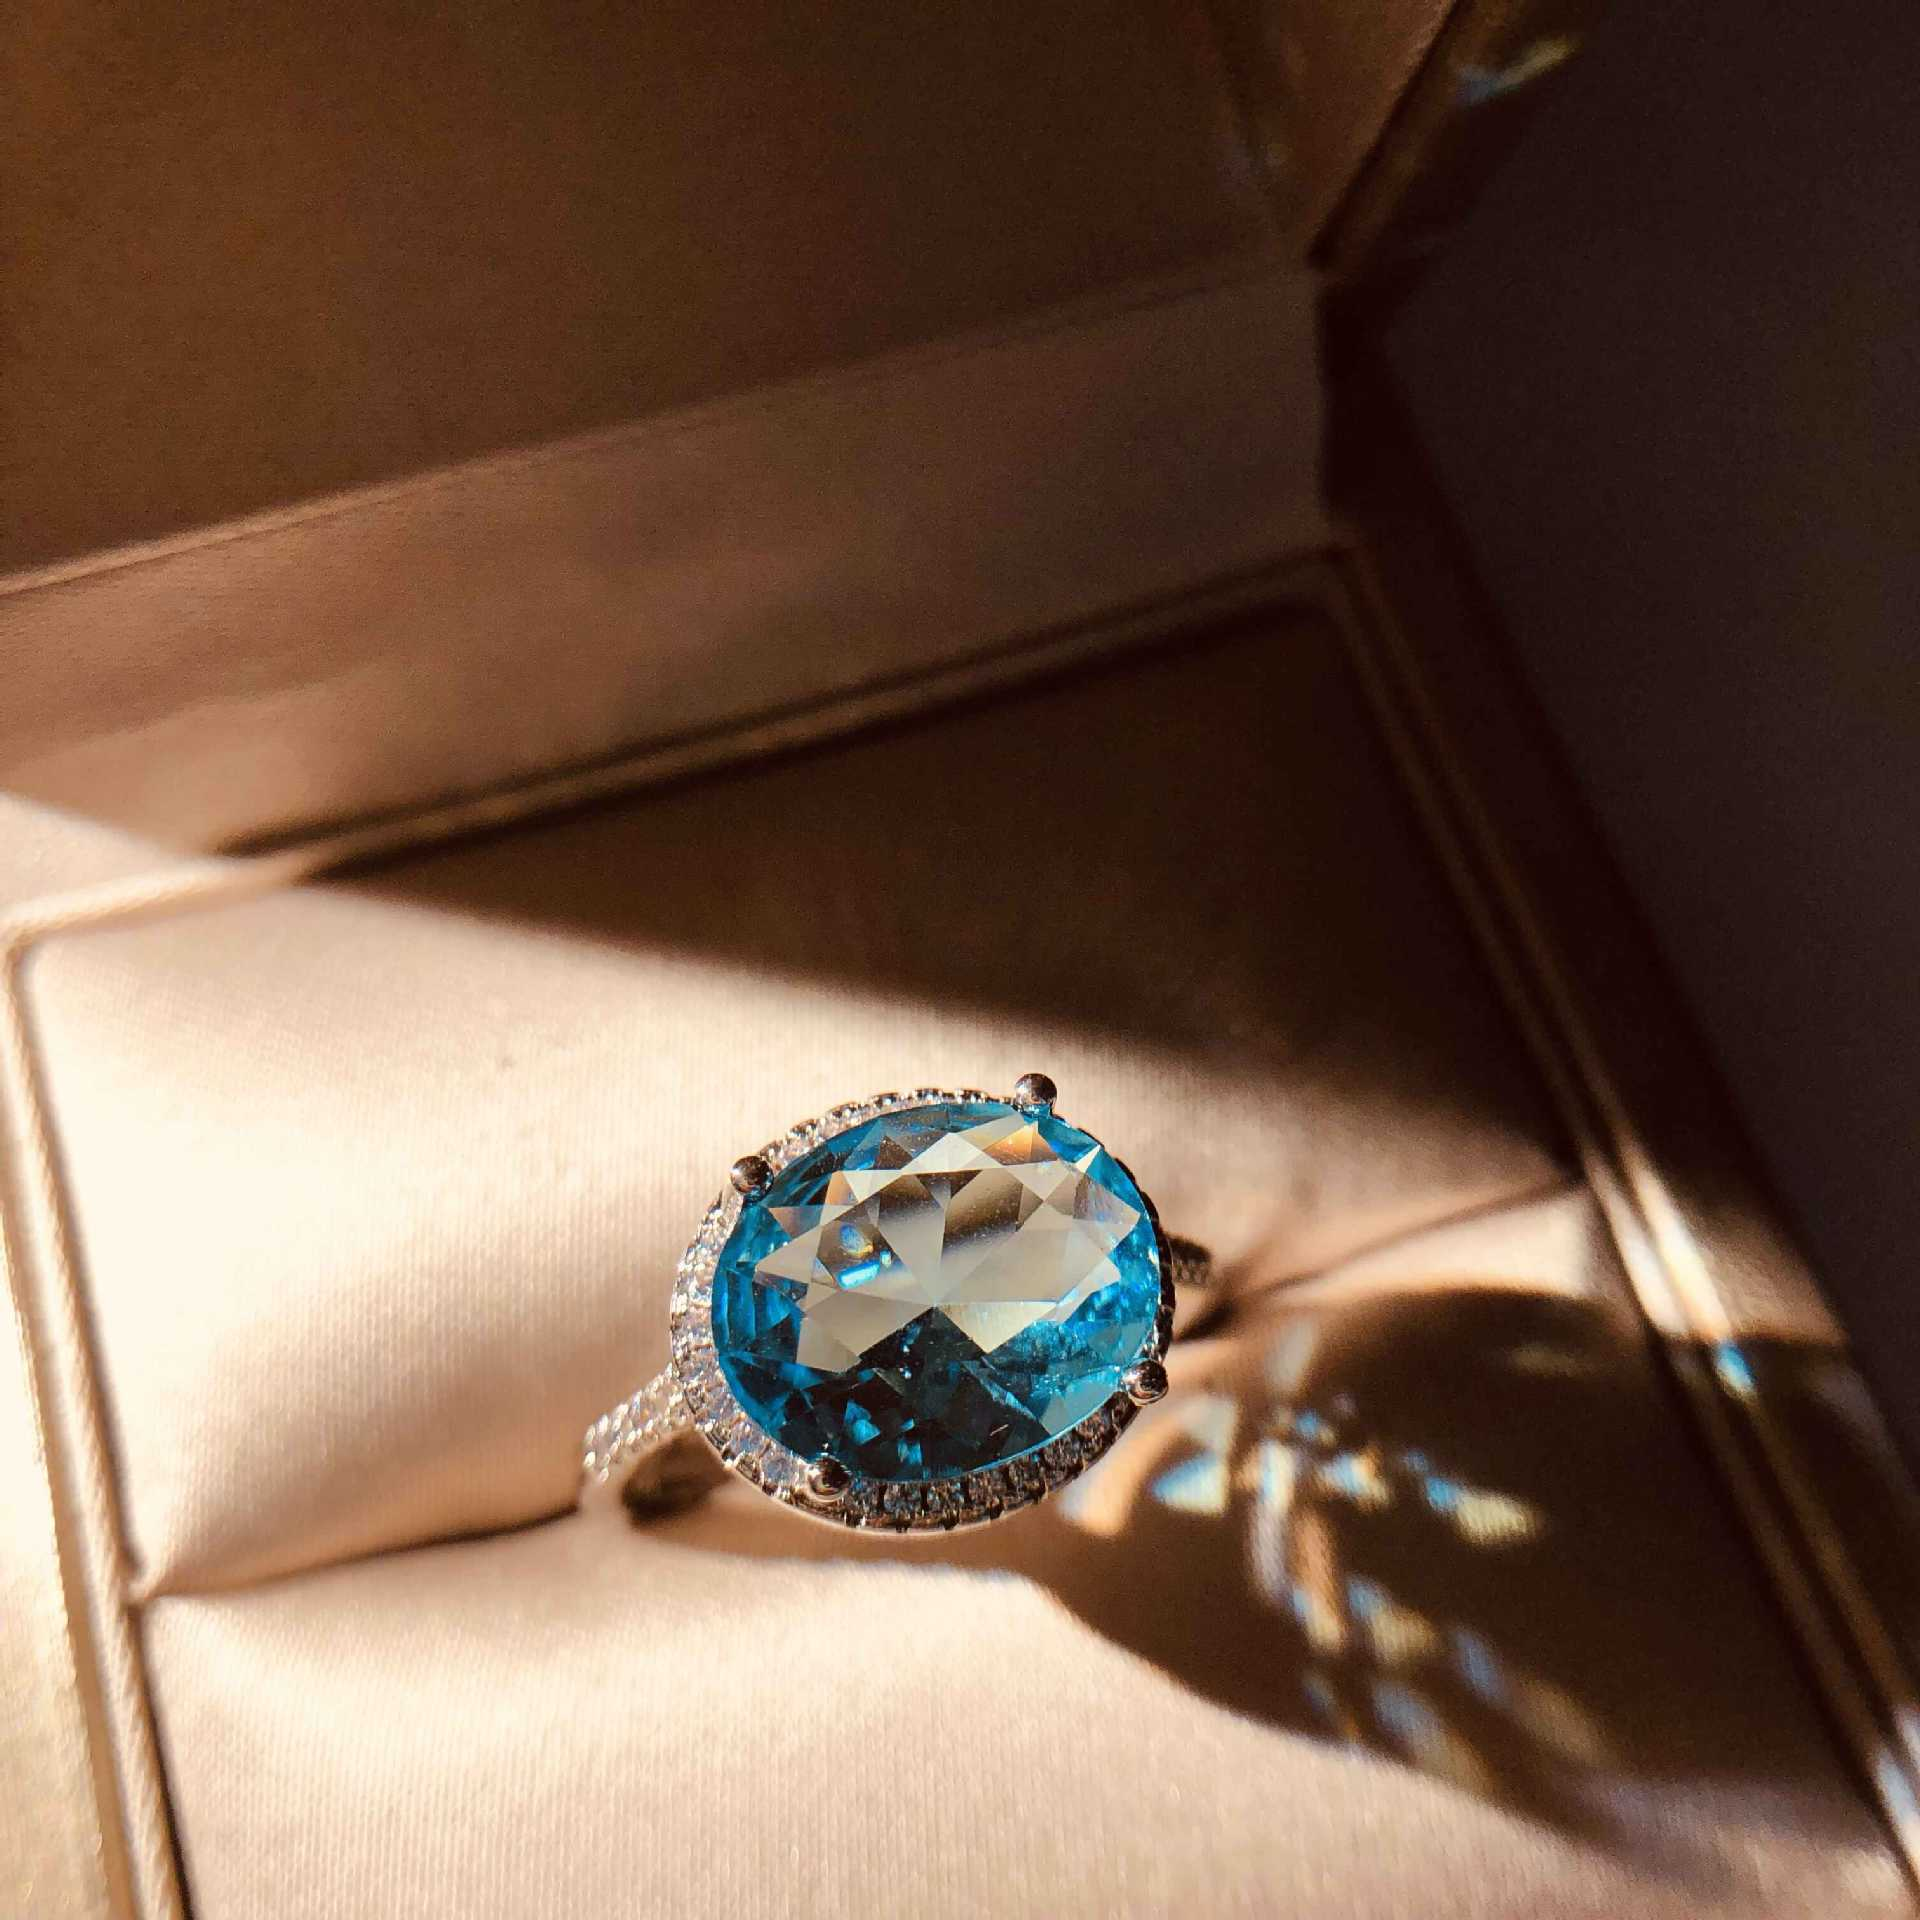 Hot sale Sky Blue Cubic Zircon Ring Female Fashion Silver Color Big Stone Rings For Women Engagement Wedding Jewelry